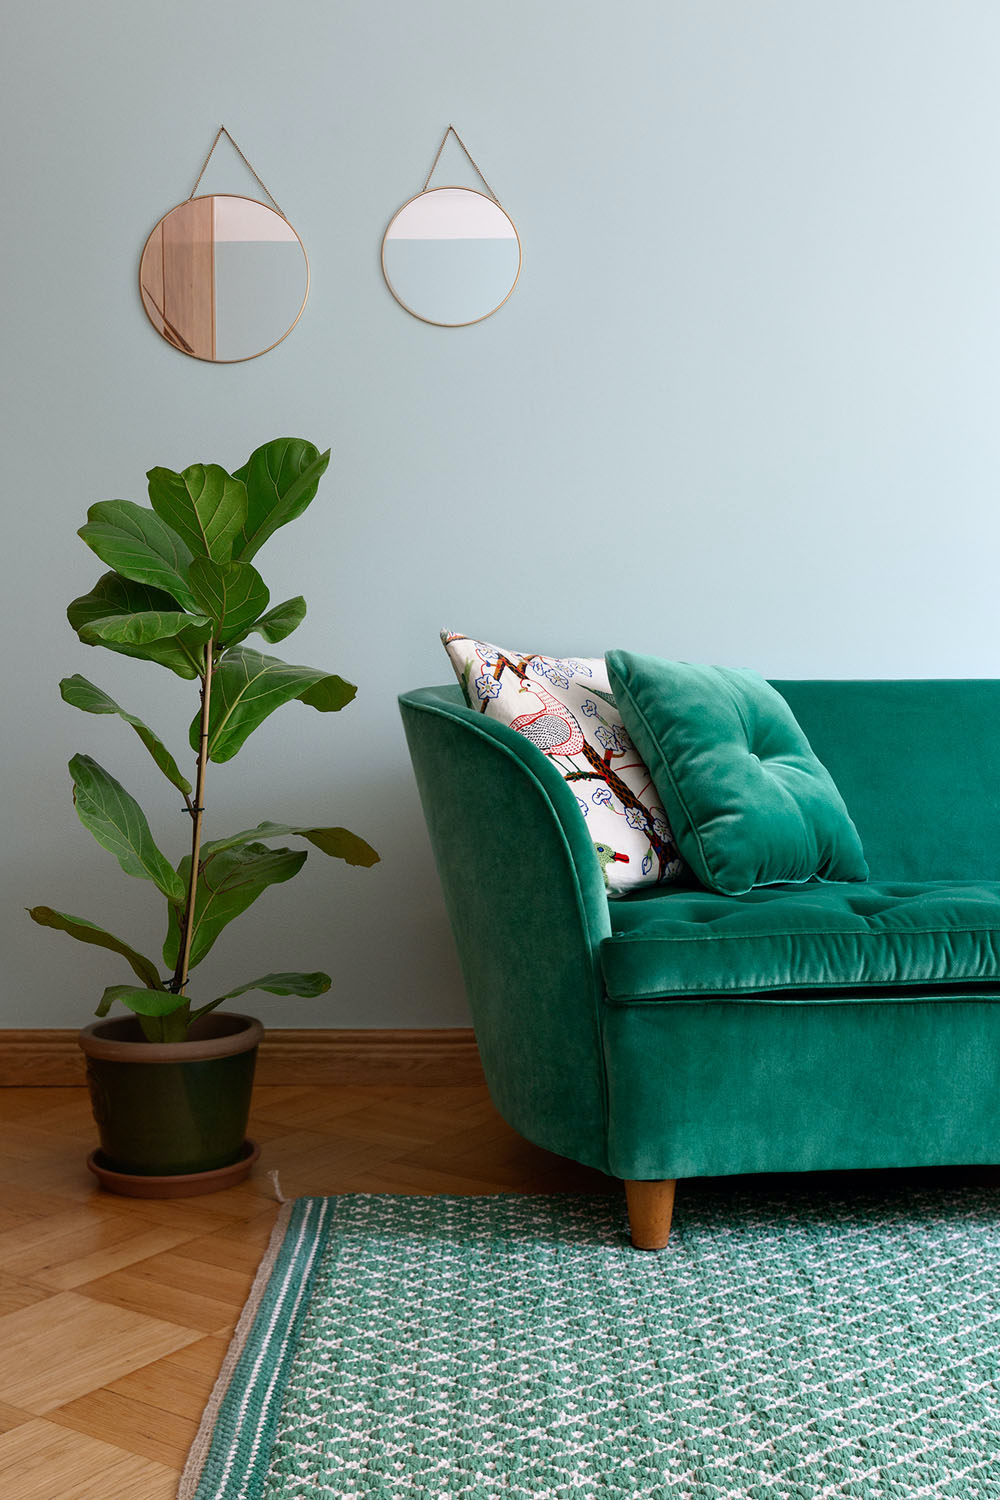 A turquoise sofa on top of a turquoise rug, next to a house plant.